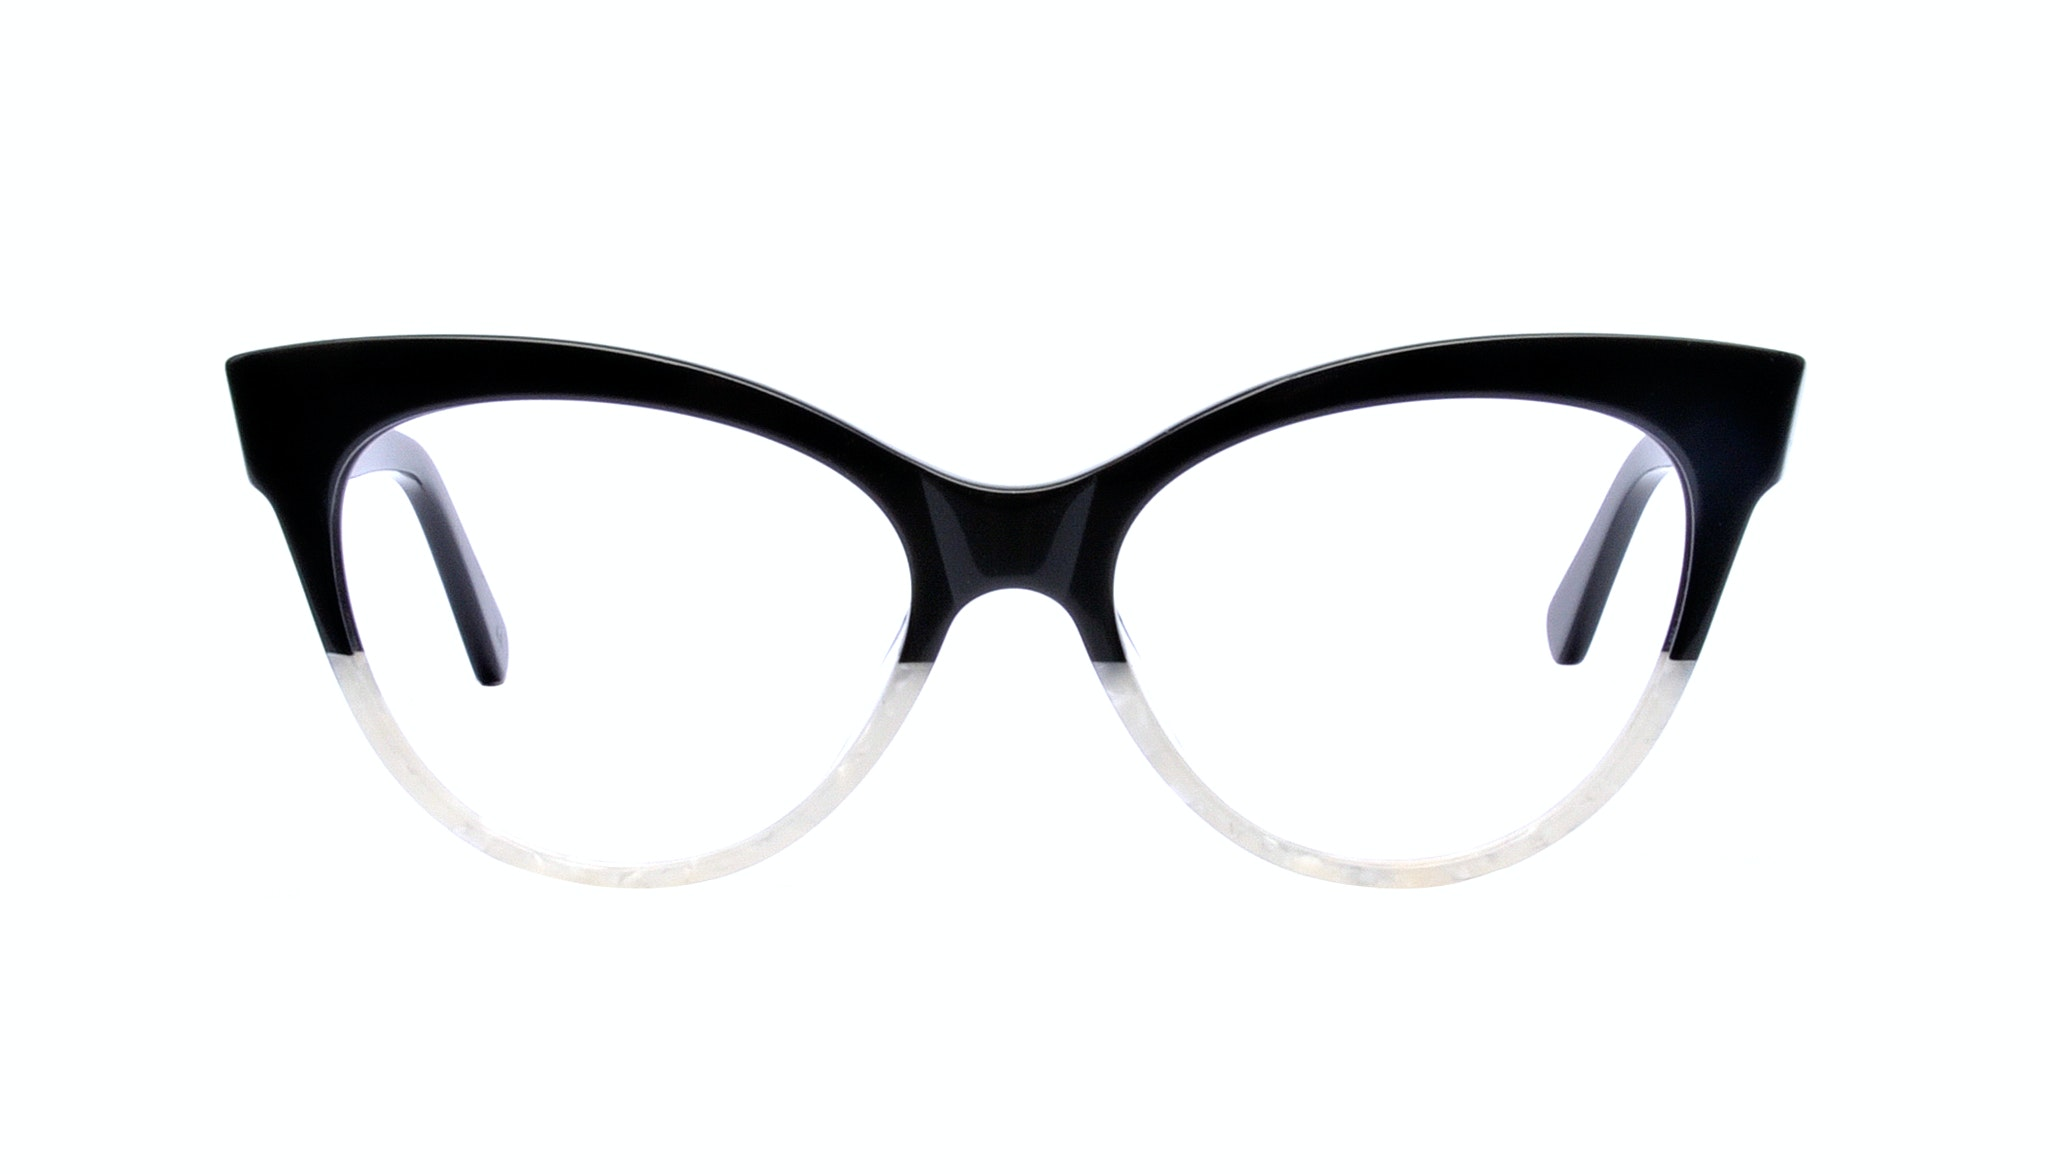 Affordable Fashion Glasses Cat Eye Daring Cateye Eyeglasses Women SkunkBoy Panda Pearl Front